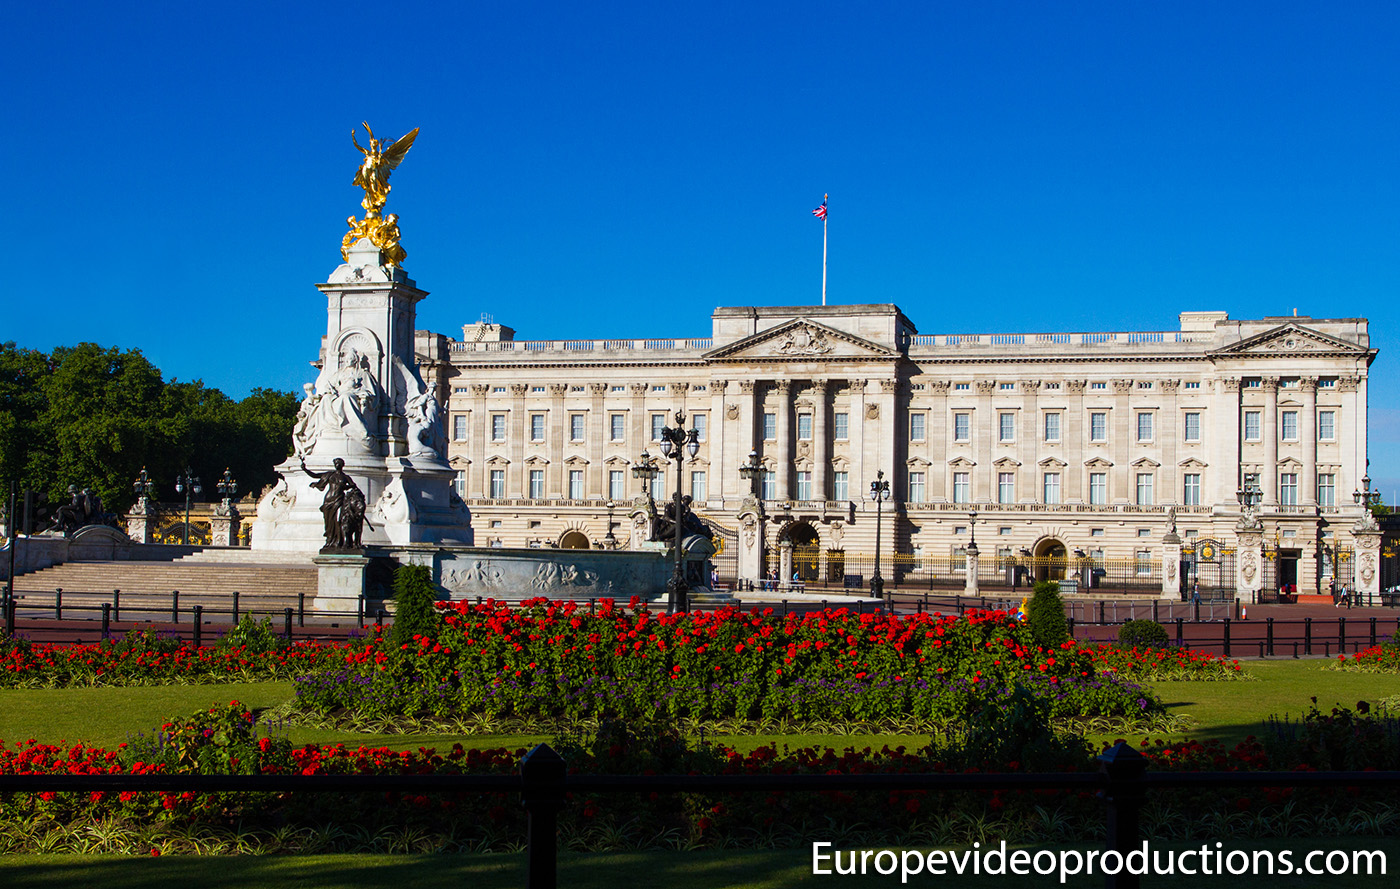 Buckingham Palace in London in United Kingdom